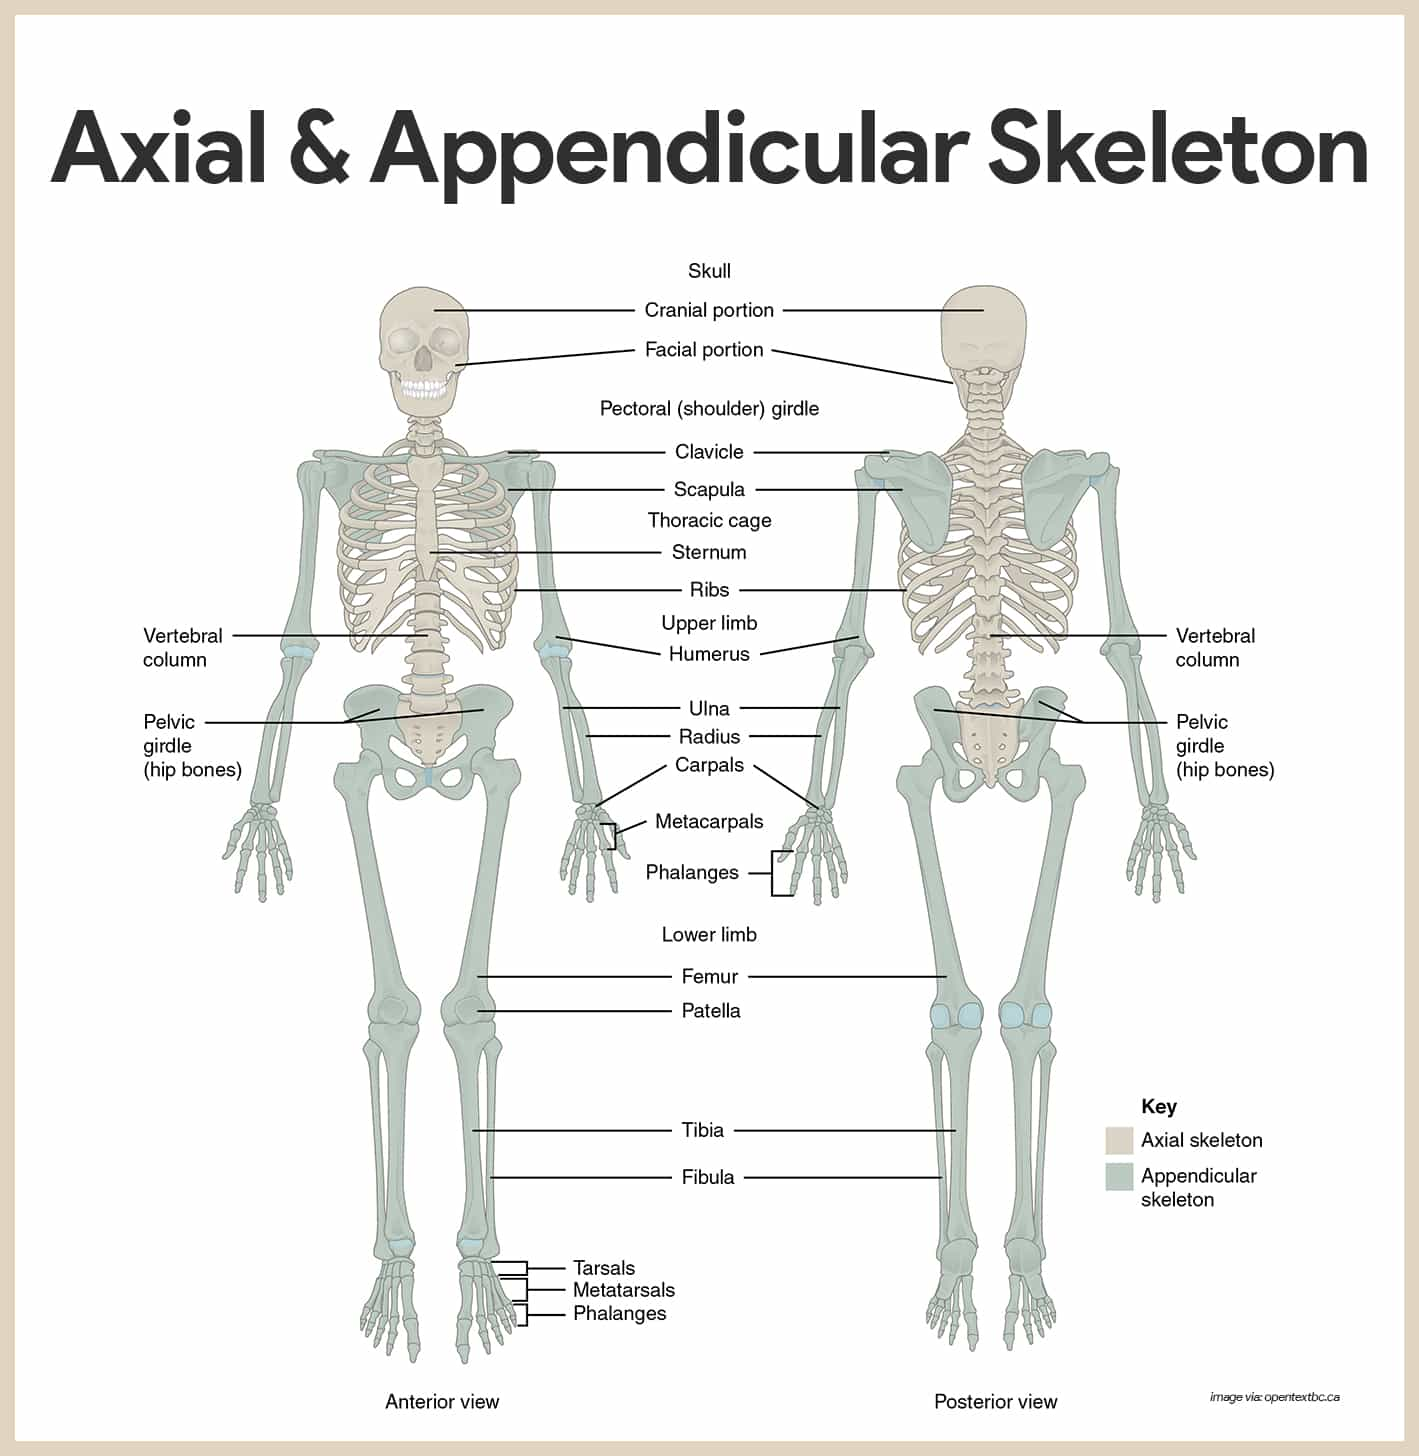 Axial & Appendicular Skeleton-Skeletal System Anatomy and Physiology for Nurses